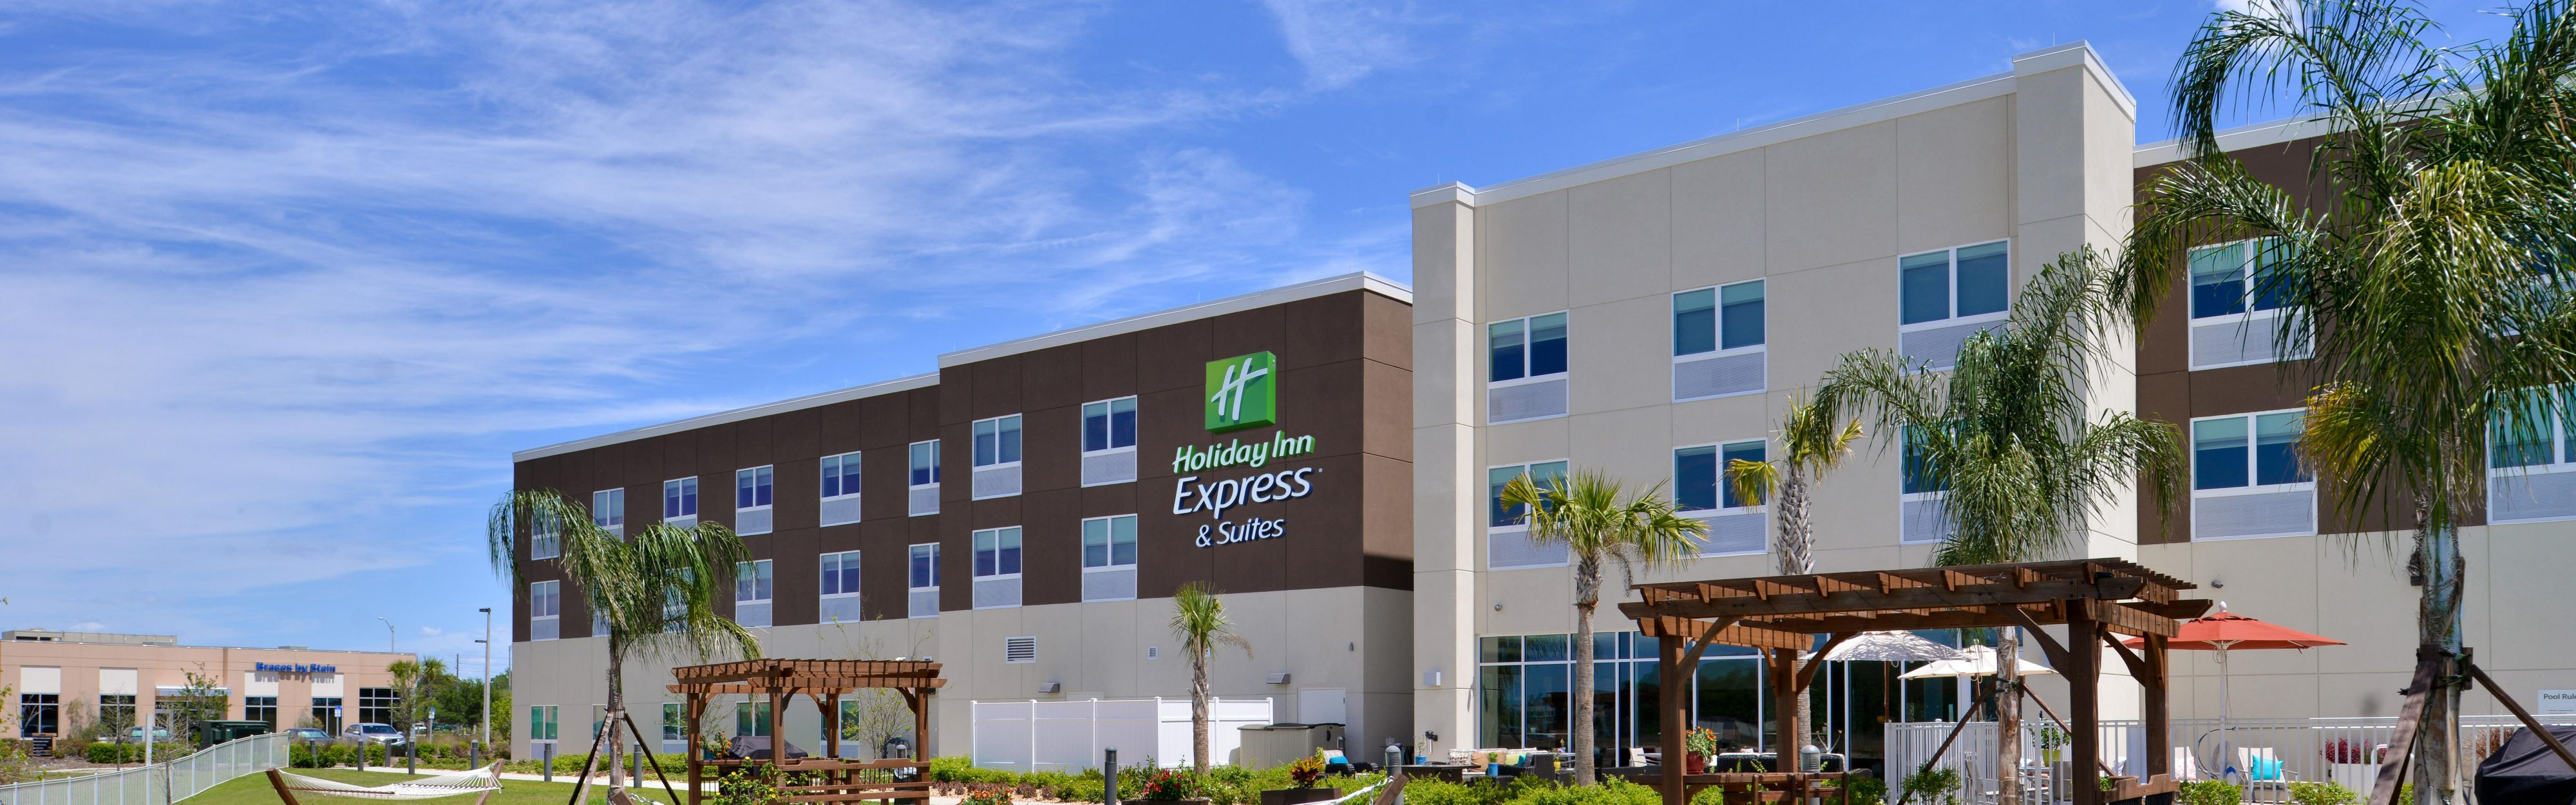 Holiday Inn Express Trinity Trinity Florida Fl